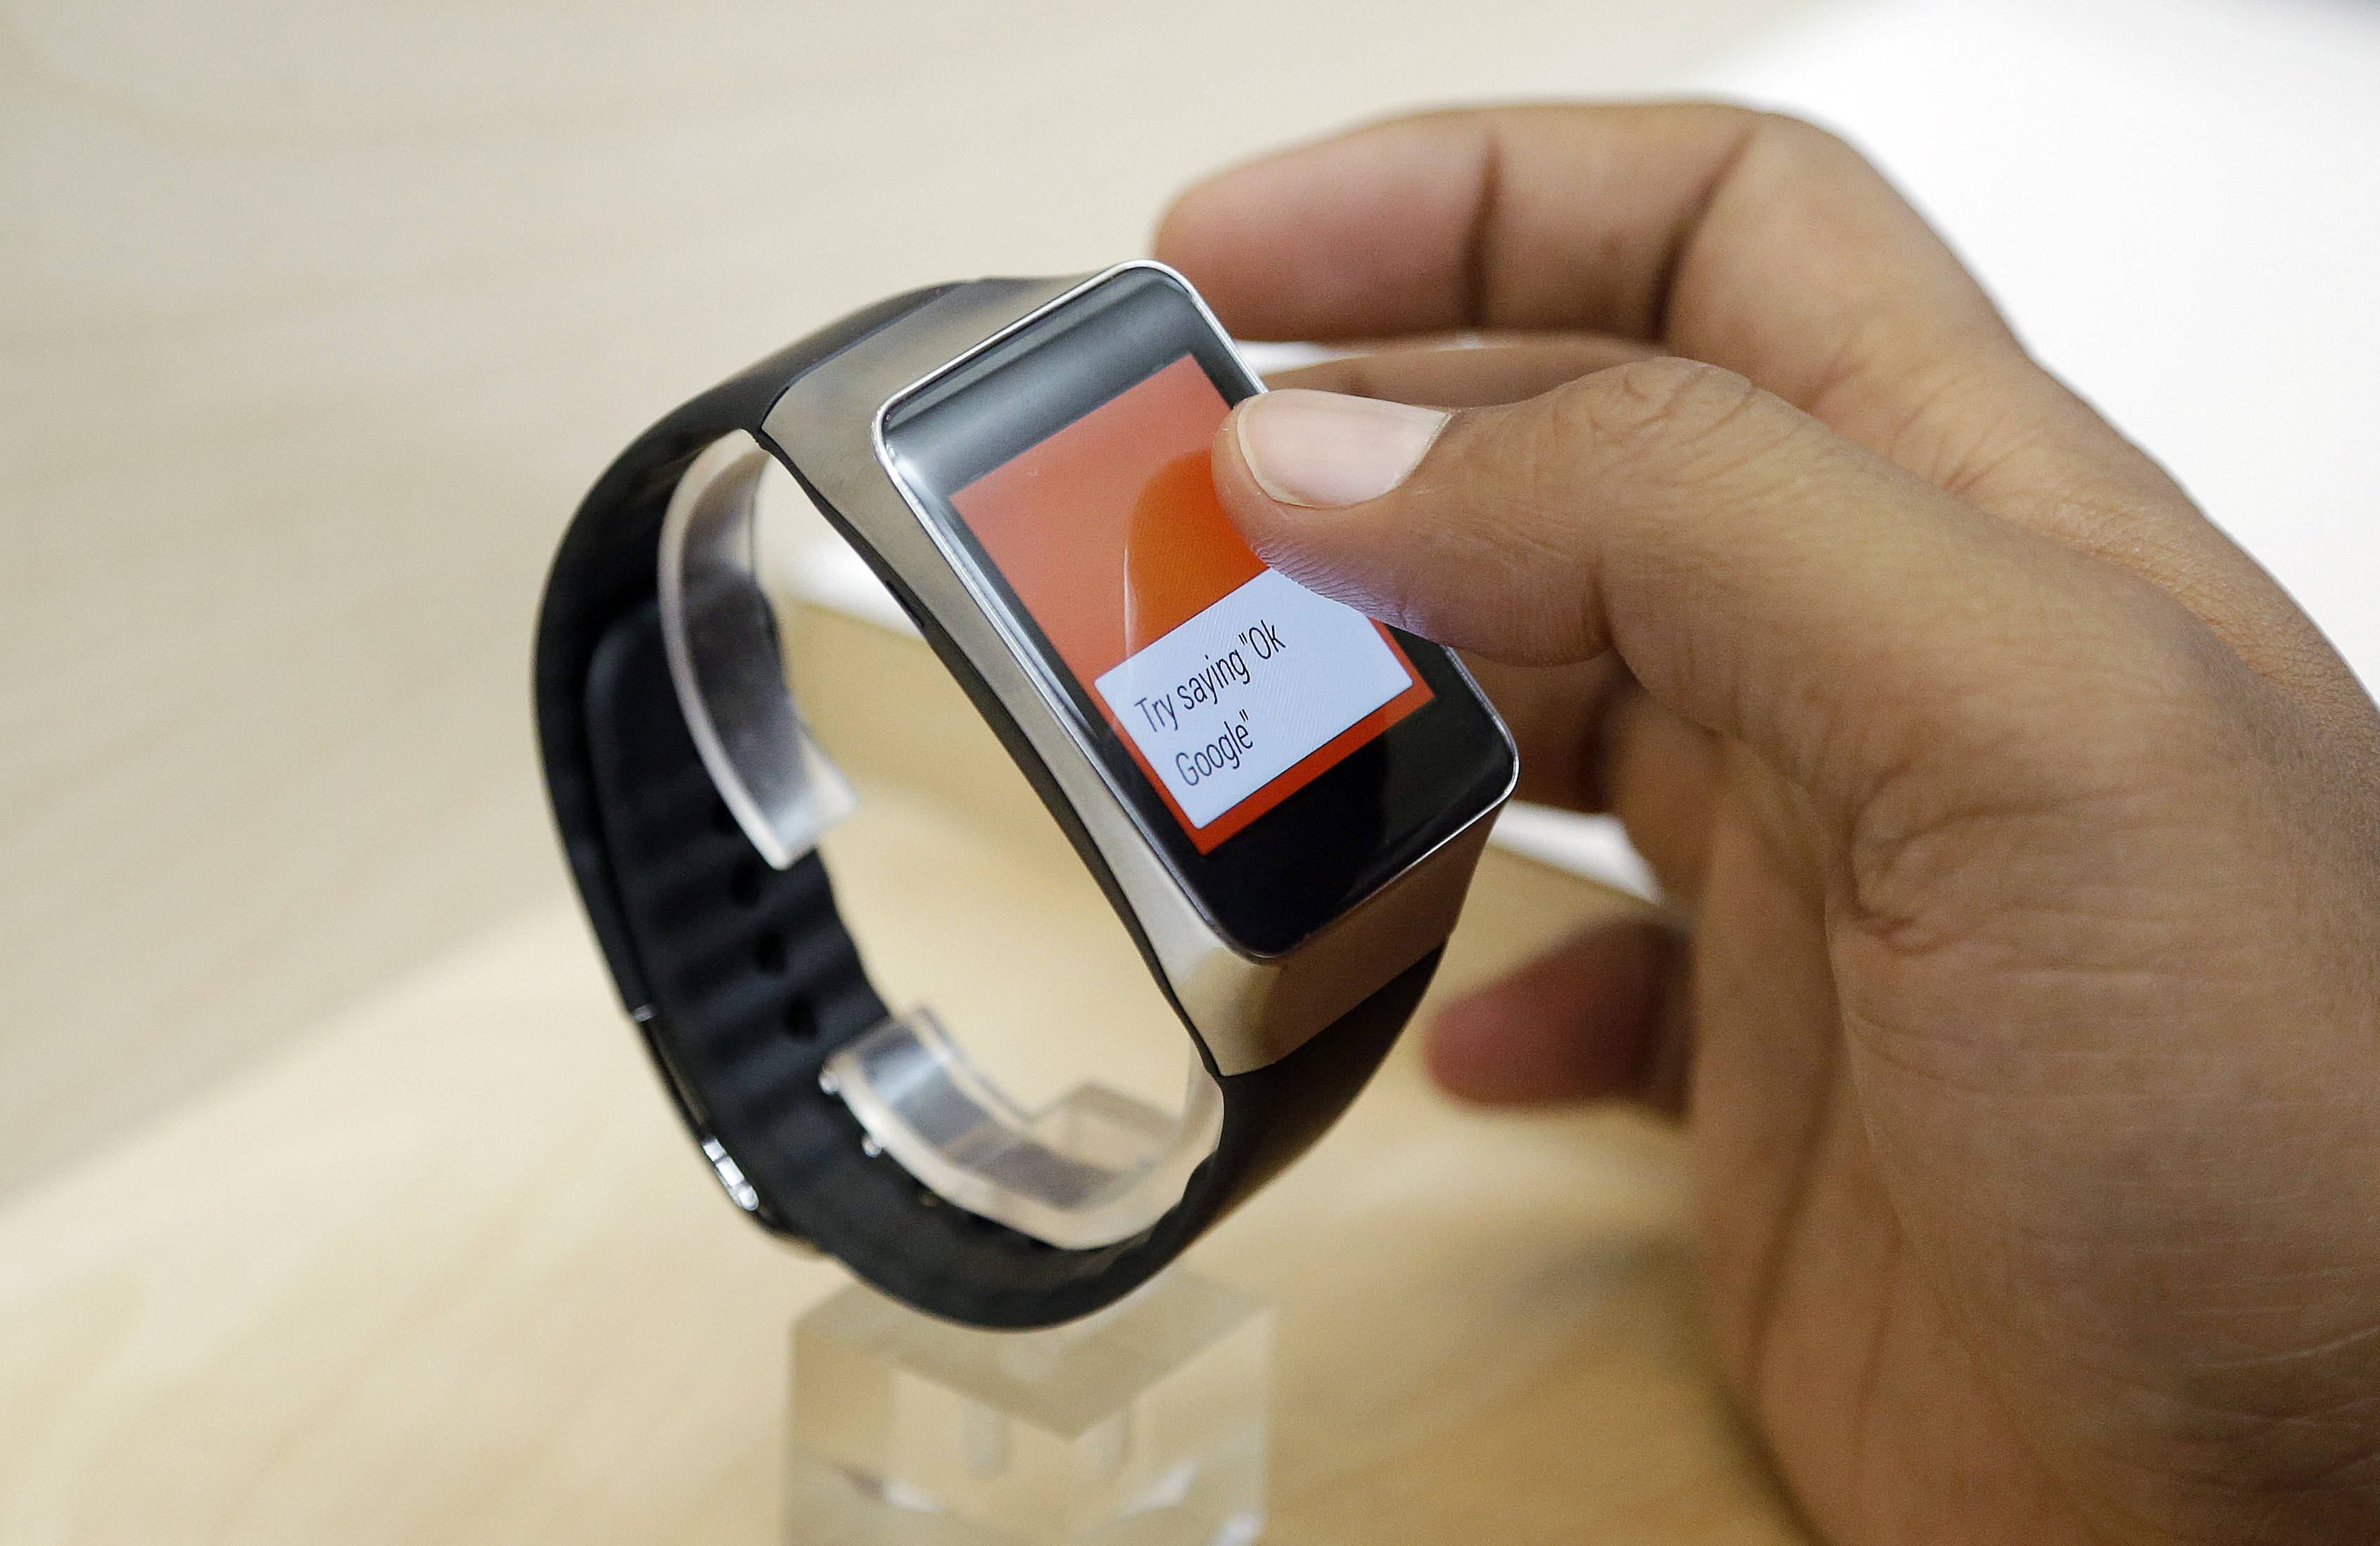 Samsung's Gear Live smartwatch will cost you $199.